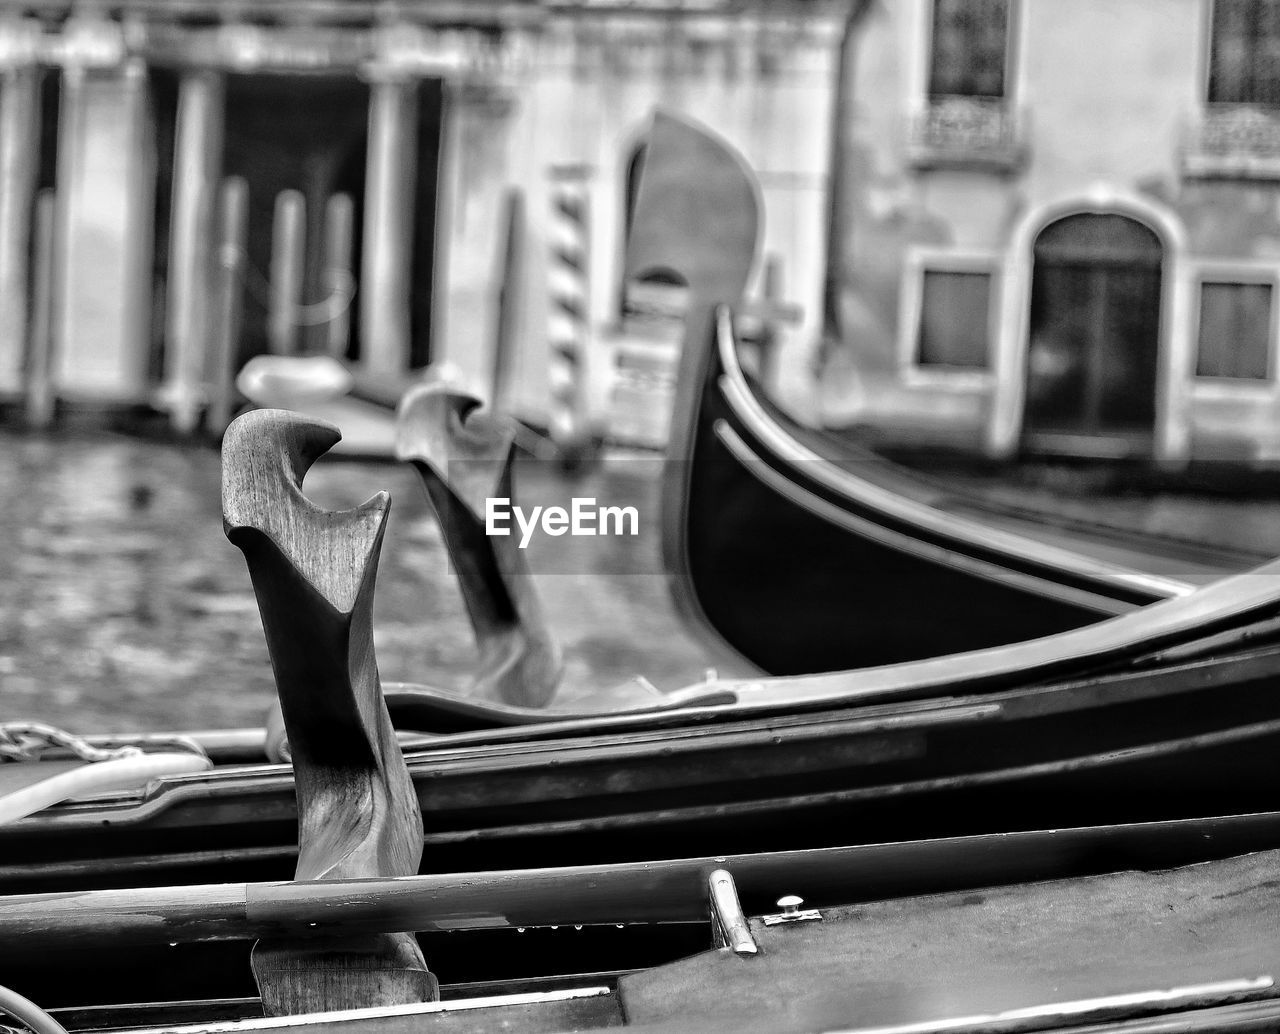 built structure, focus on foreground, mode of transportation, gondola - traditional boat, architecture, no people, transportation, nautical vessel, day, moored, building exterior, selective focus, canal, absence, outdoors, close-up, travel destinations, reflection, metal